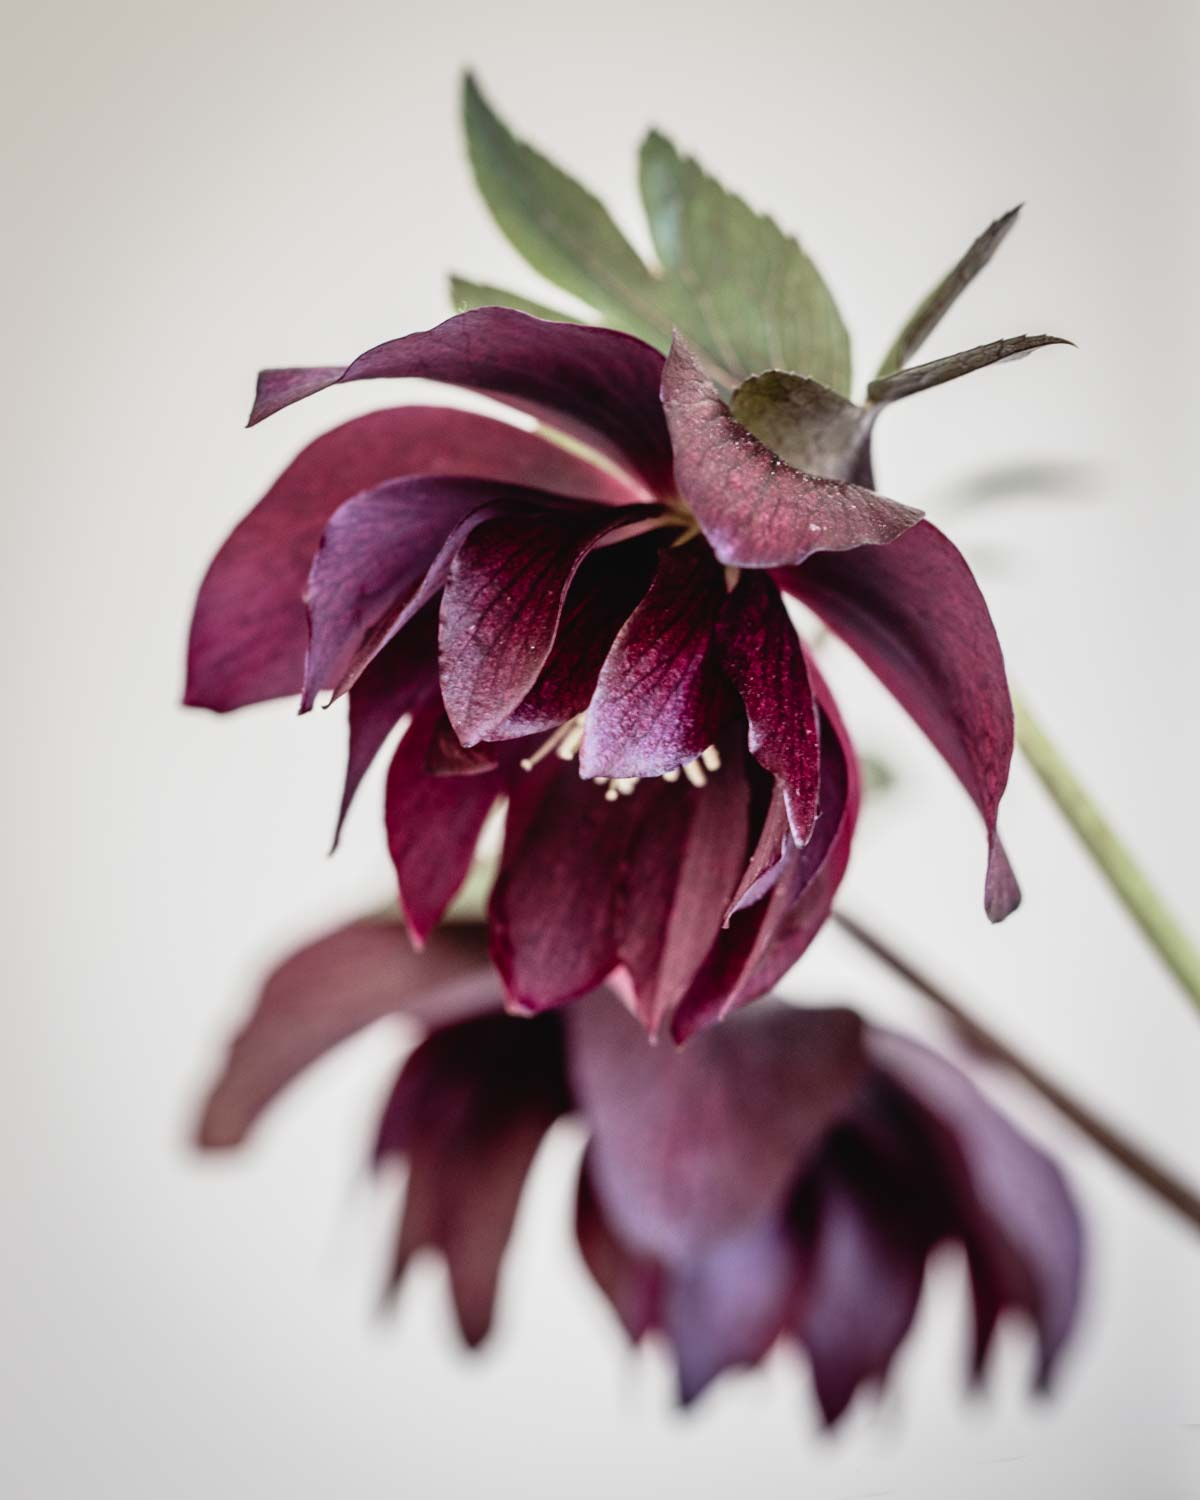 Heavenly hellebores: Helleborus 'Cerise', deep red-purple flowers on dark stems and dark green leaves - Cloverhome.nl